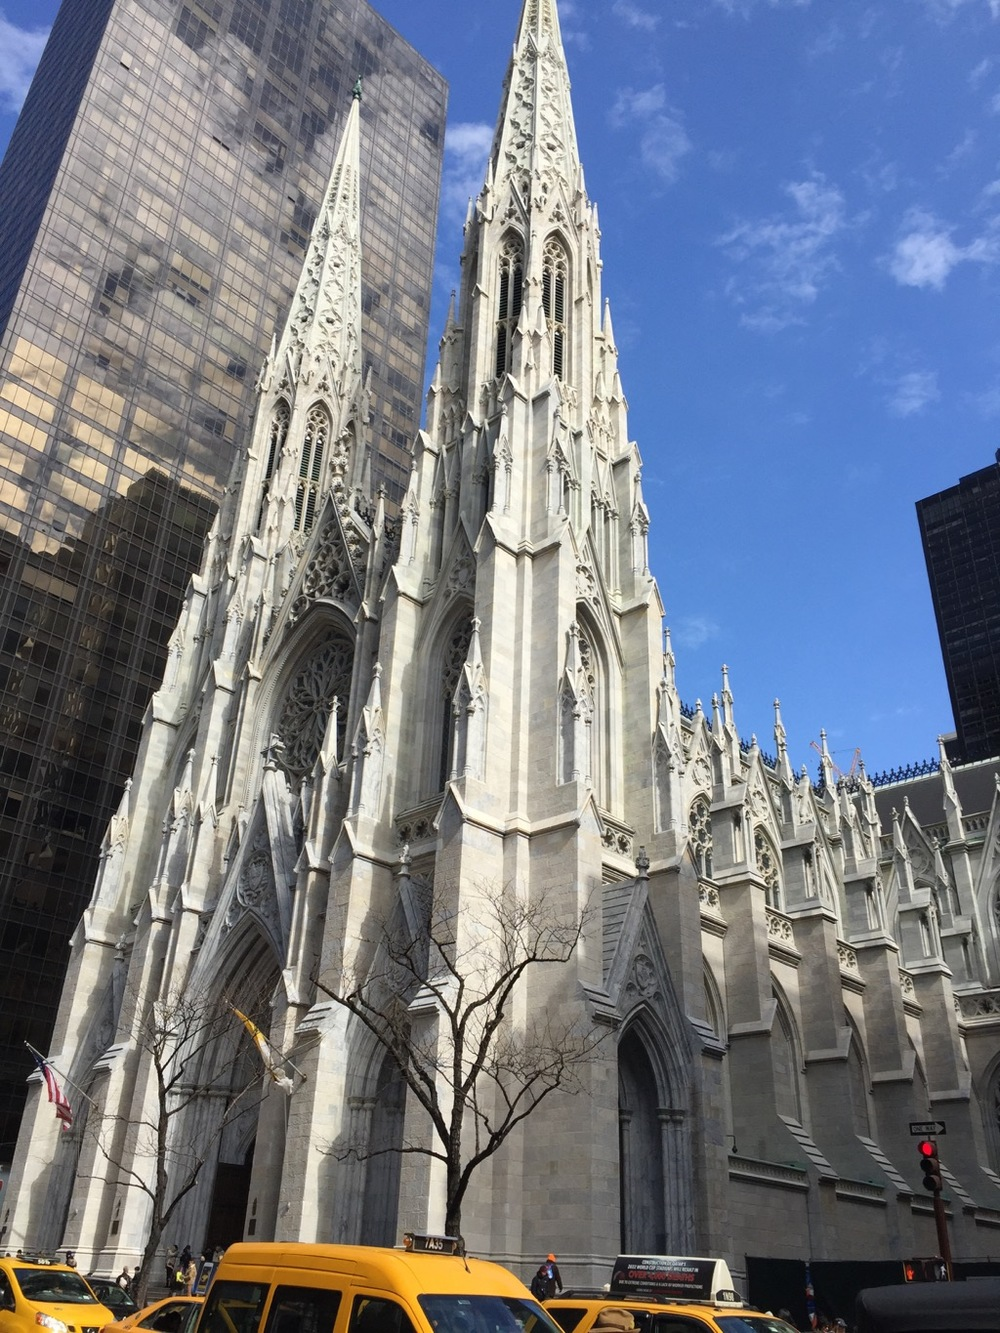 St. Patrick's Cathedral. It's been under renovation for the last few years - first time in forever that it hasn't been covered by tarps. It's beautiful now - all glowing and white.